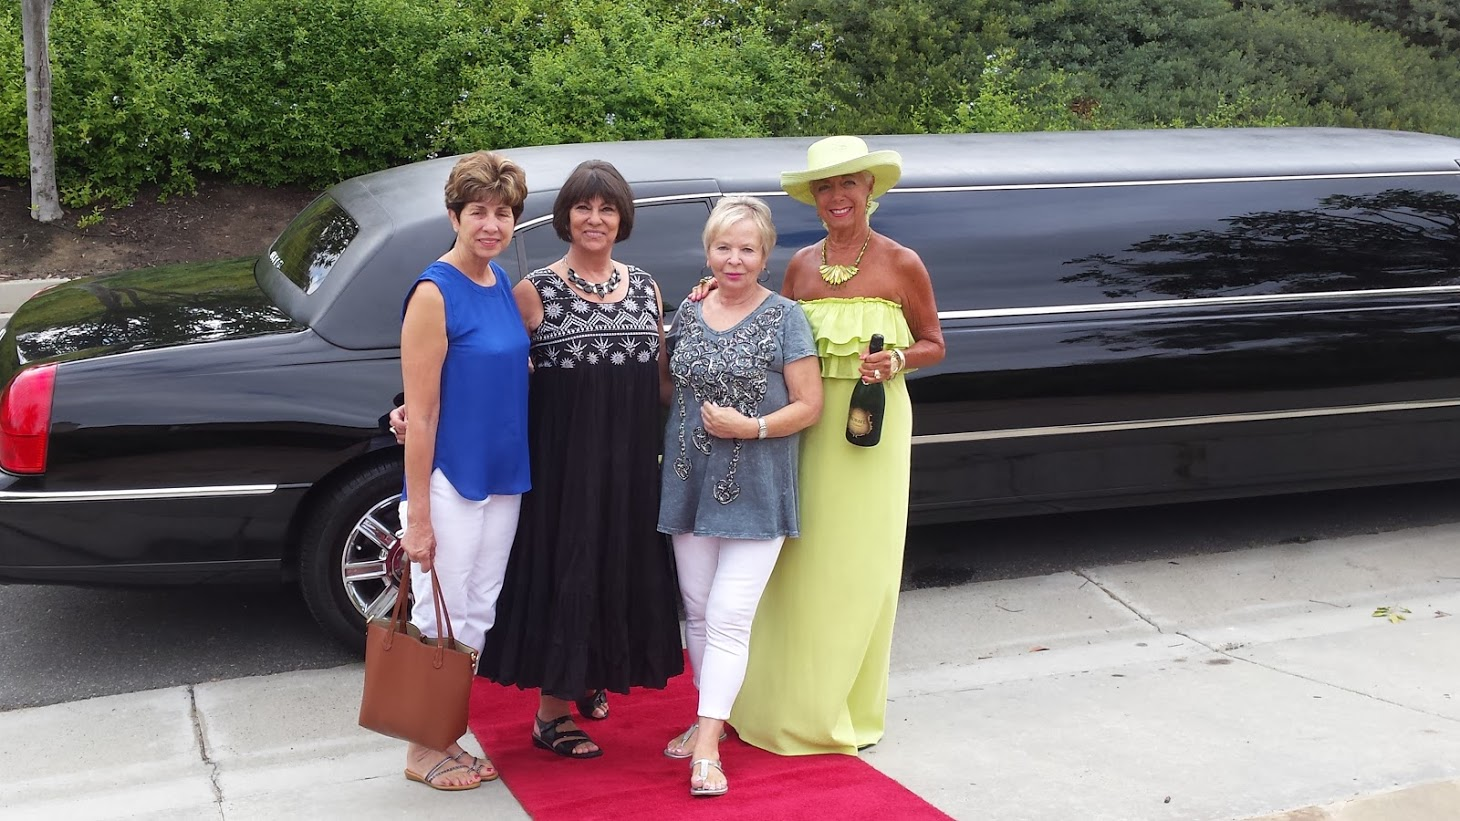 glitz_limousines_guests24